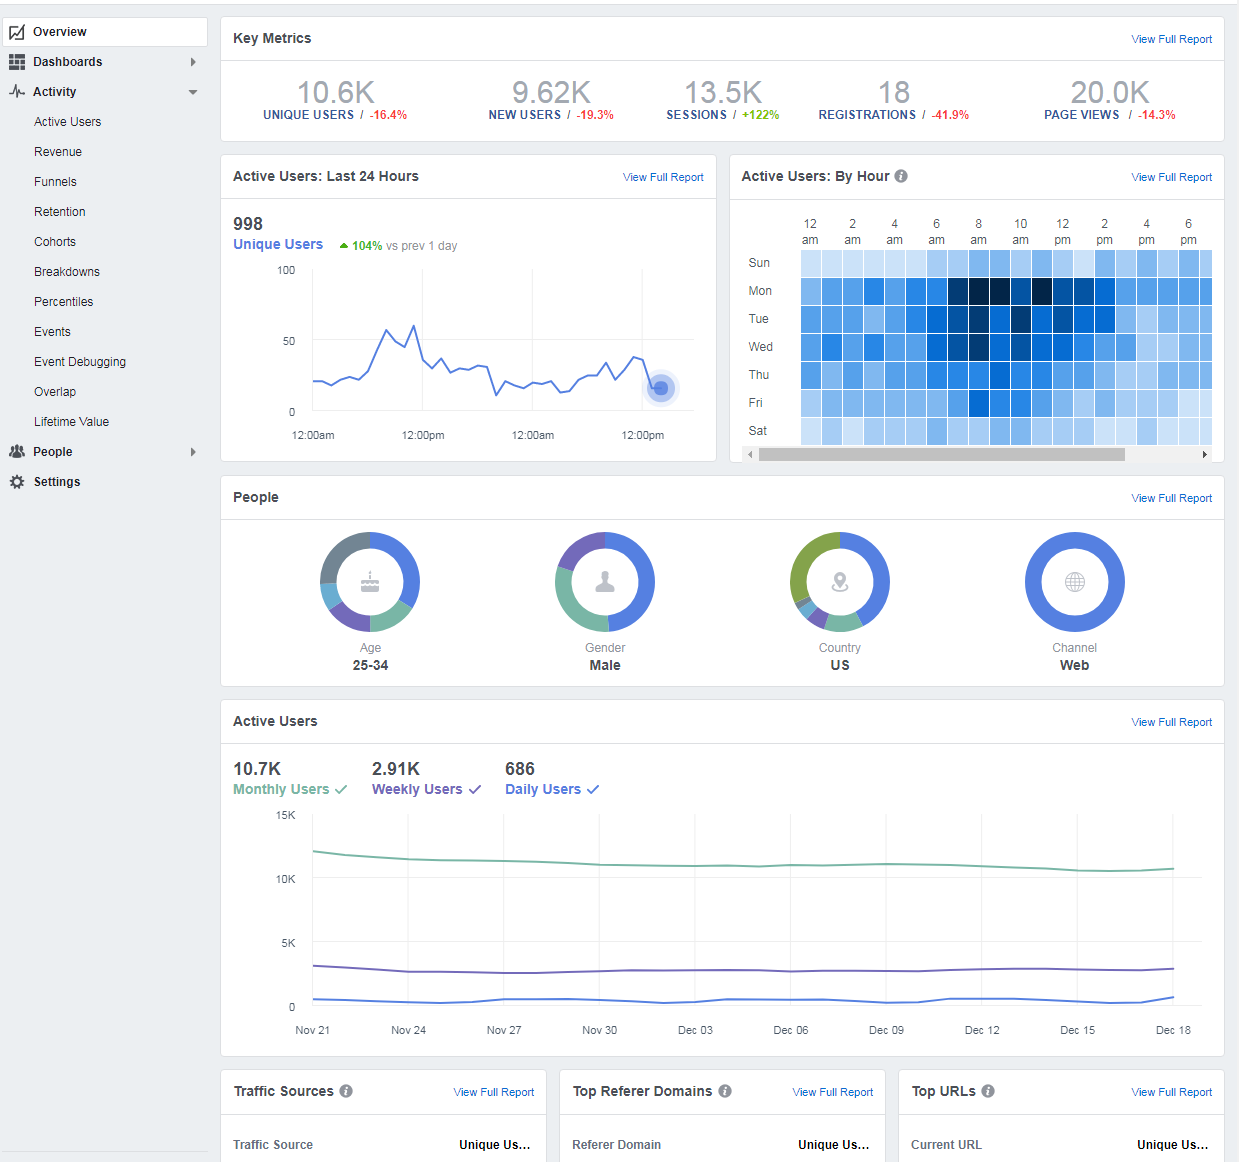 Facebook Analytics Overview